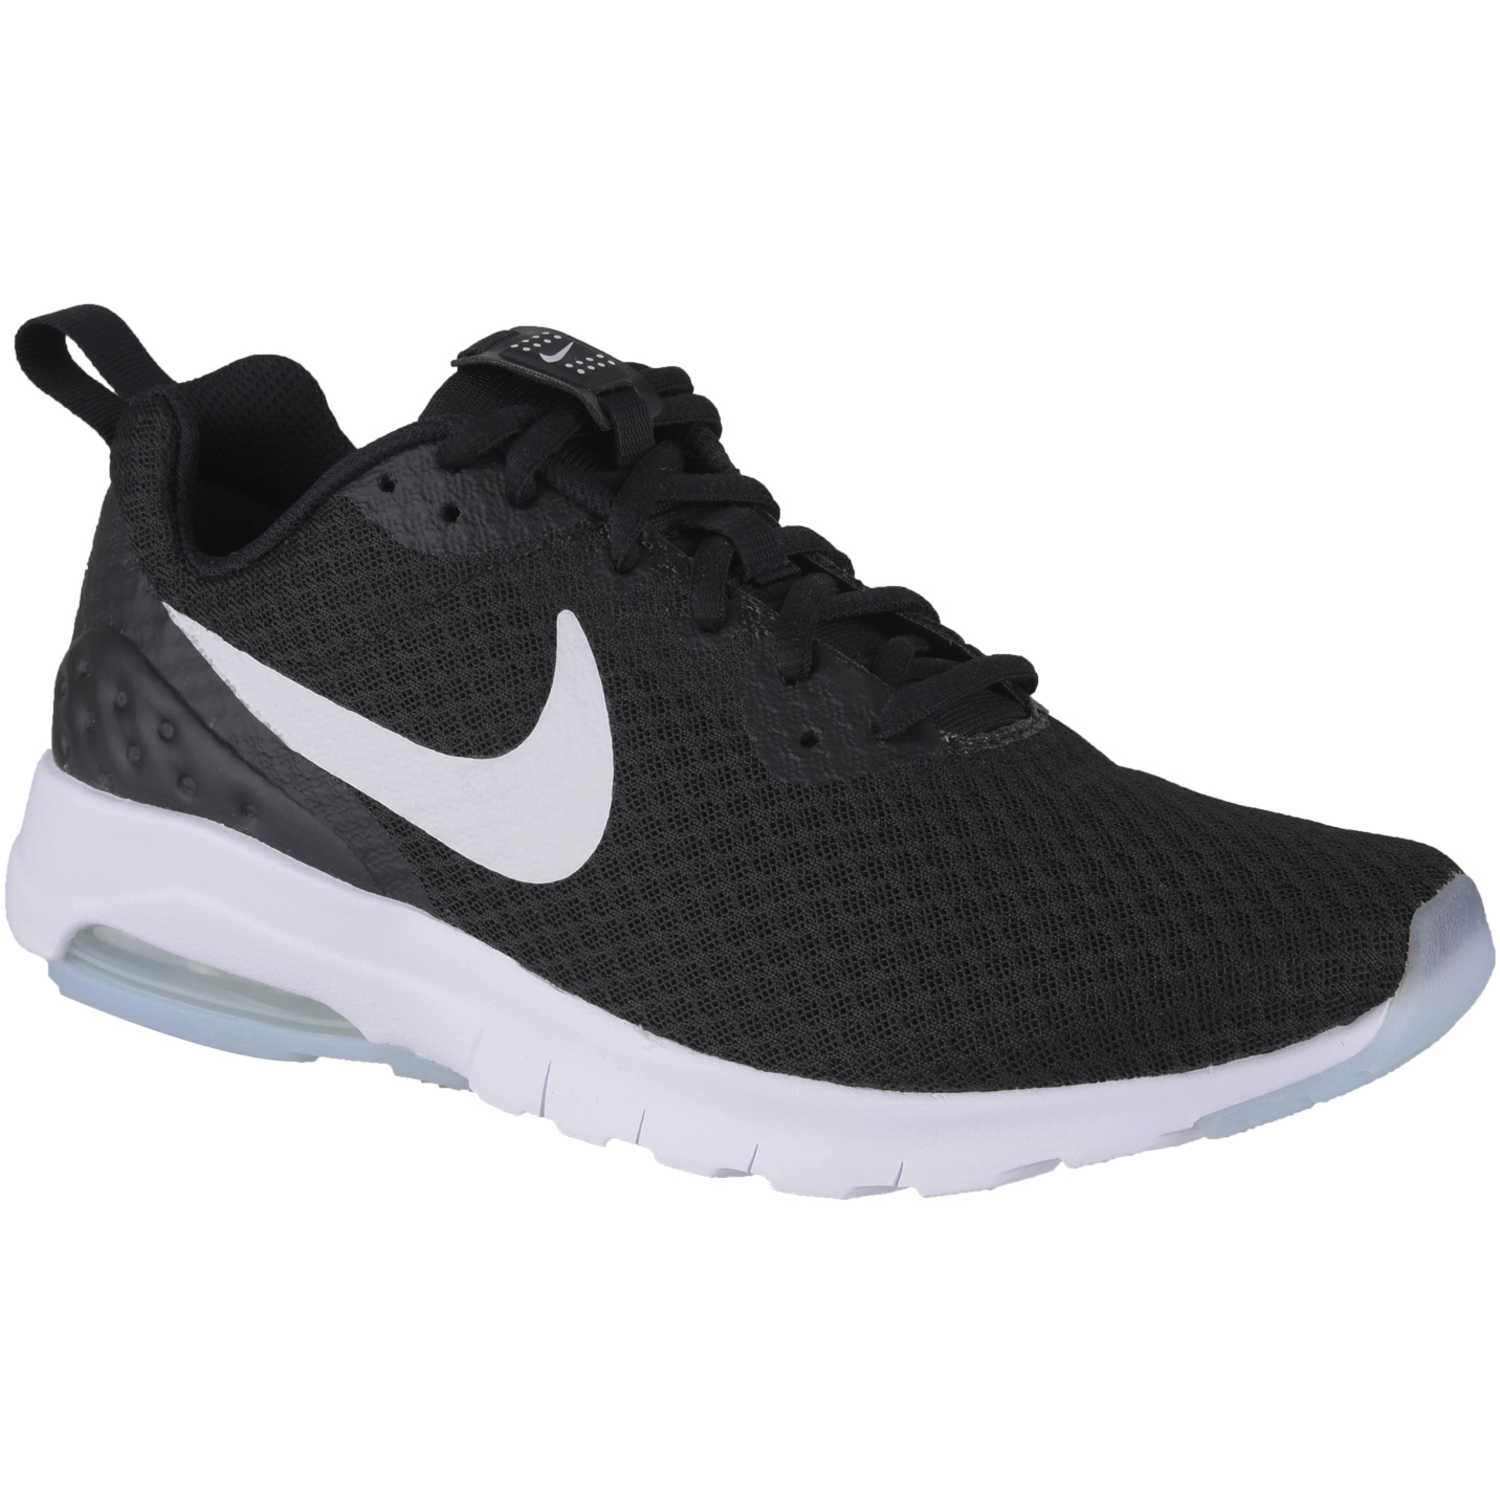 Casual de Hombre Nike Negro blanco air max motion lw